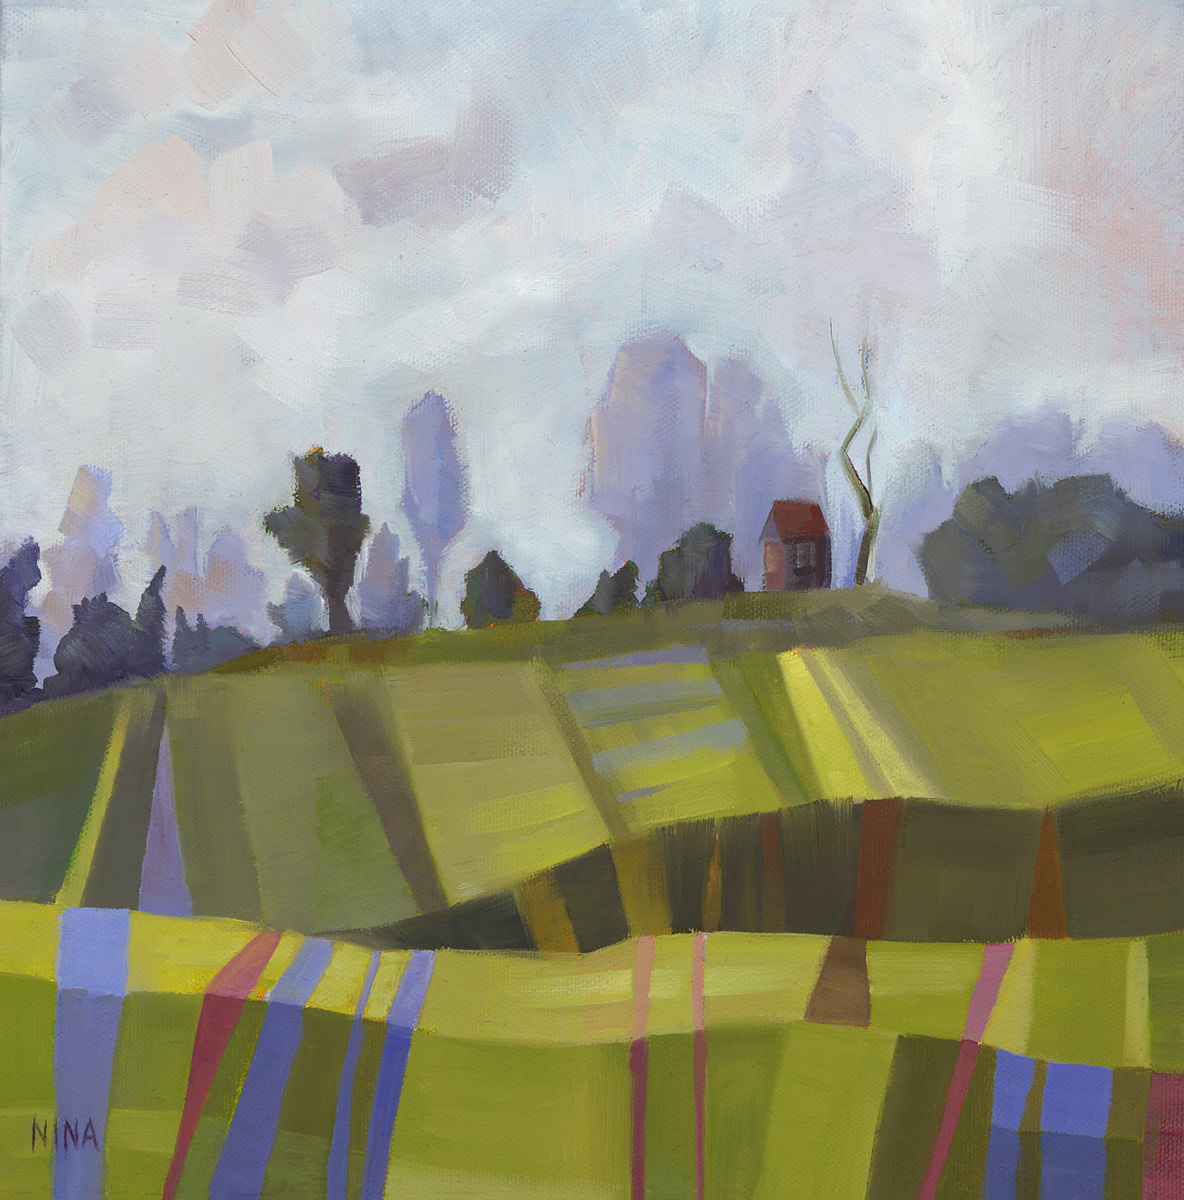 Painting of green hills and trees on the horizon.